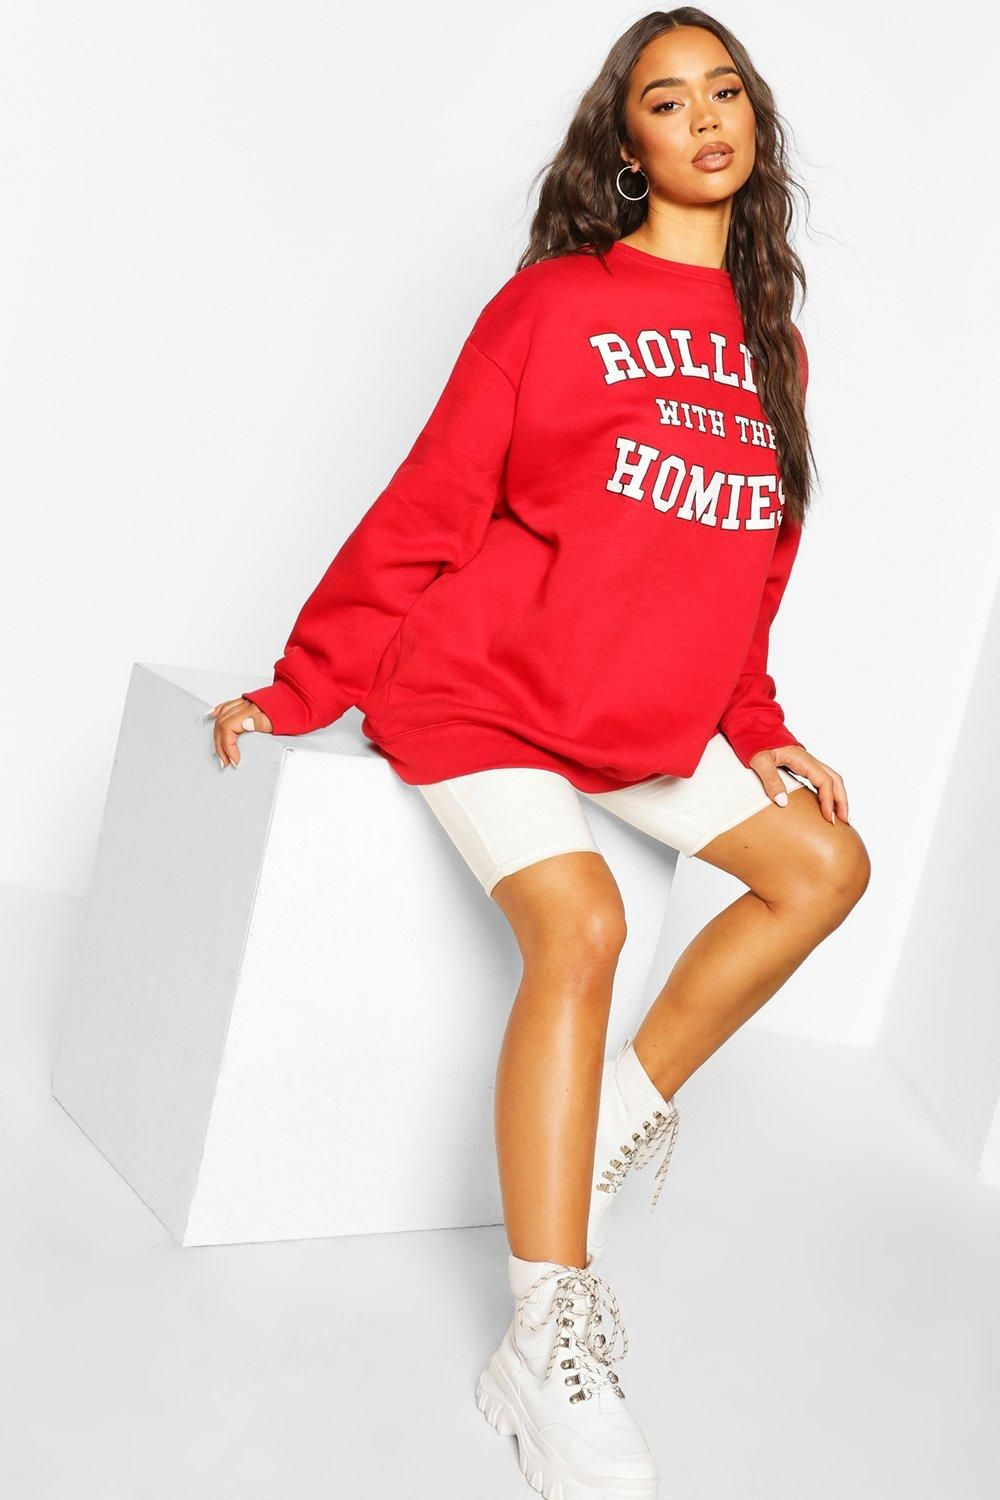 Womens Rolling With The Homies Slogan Oversized Sweatshirt - Red - S